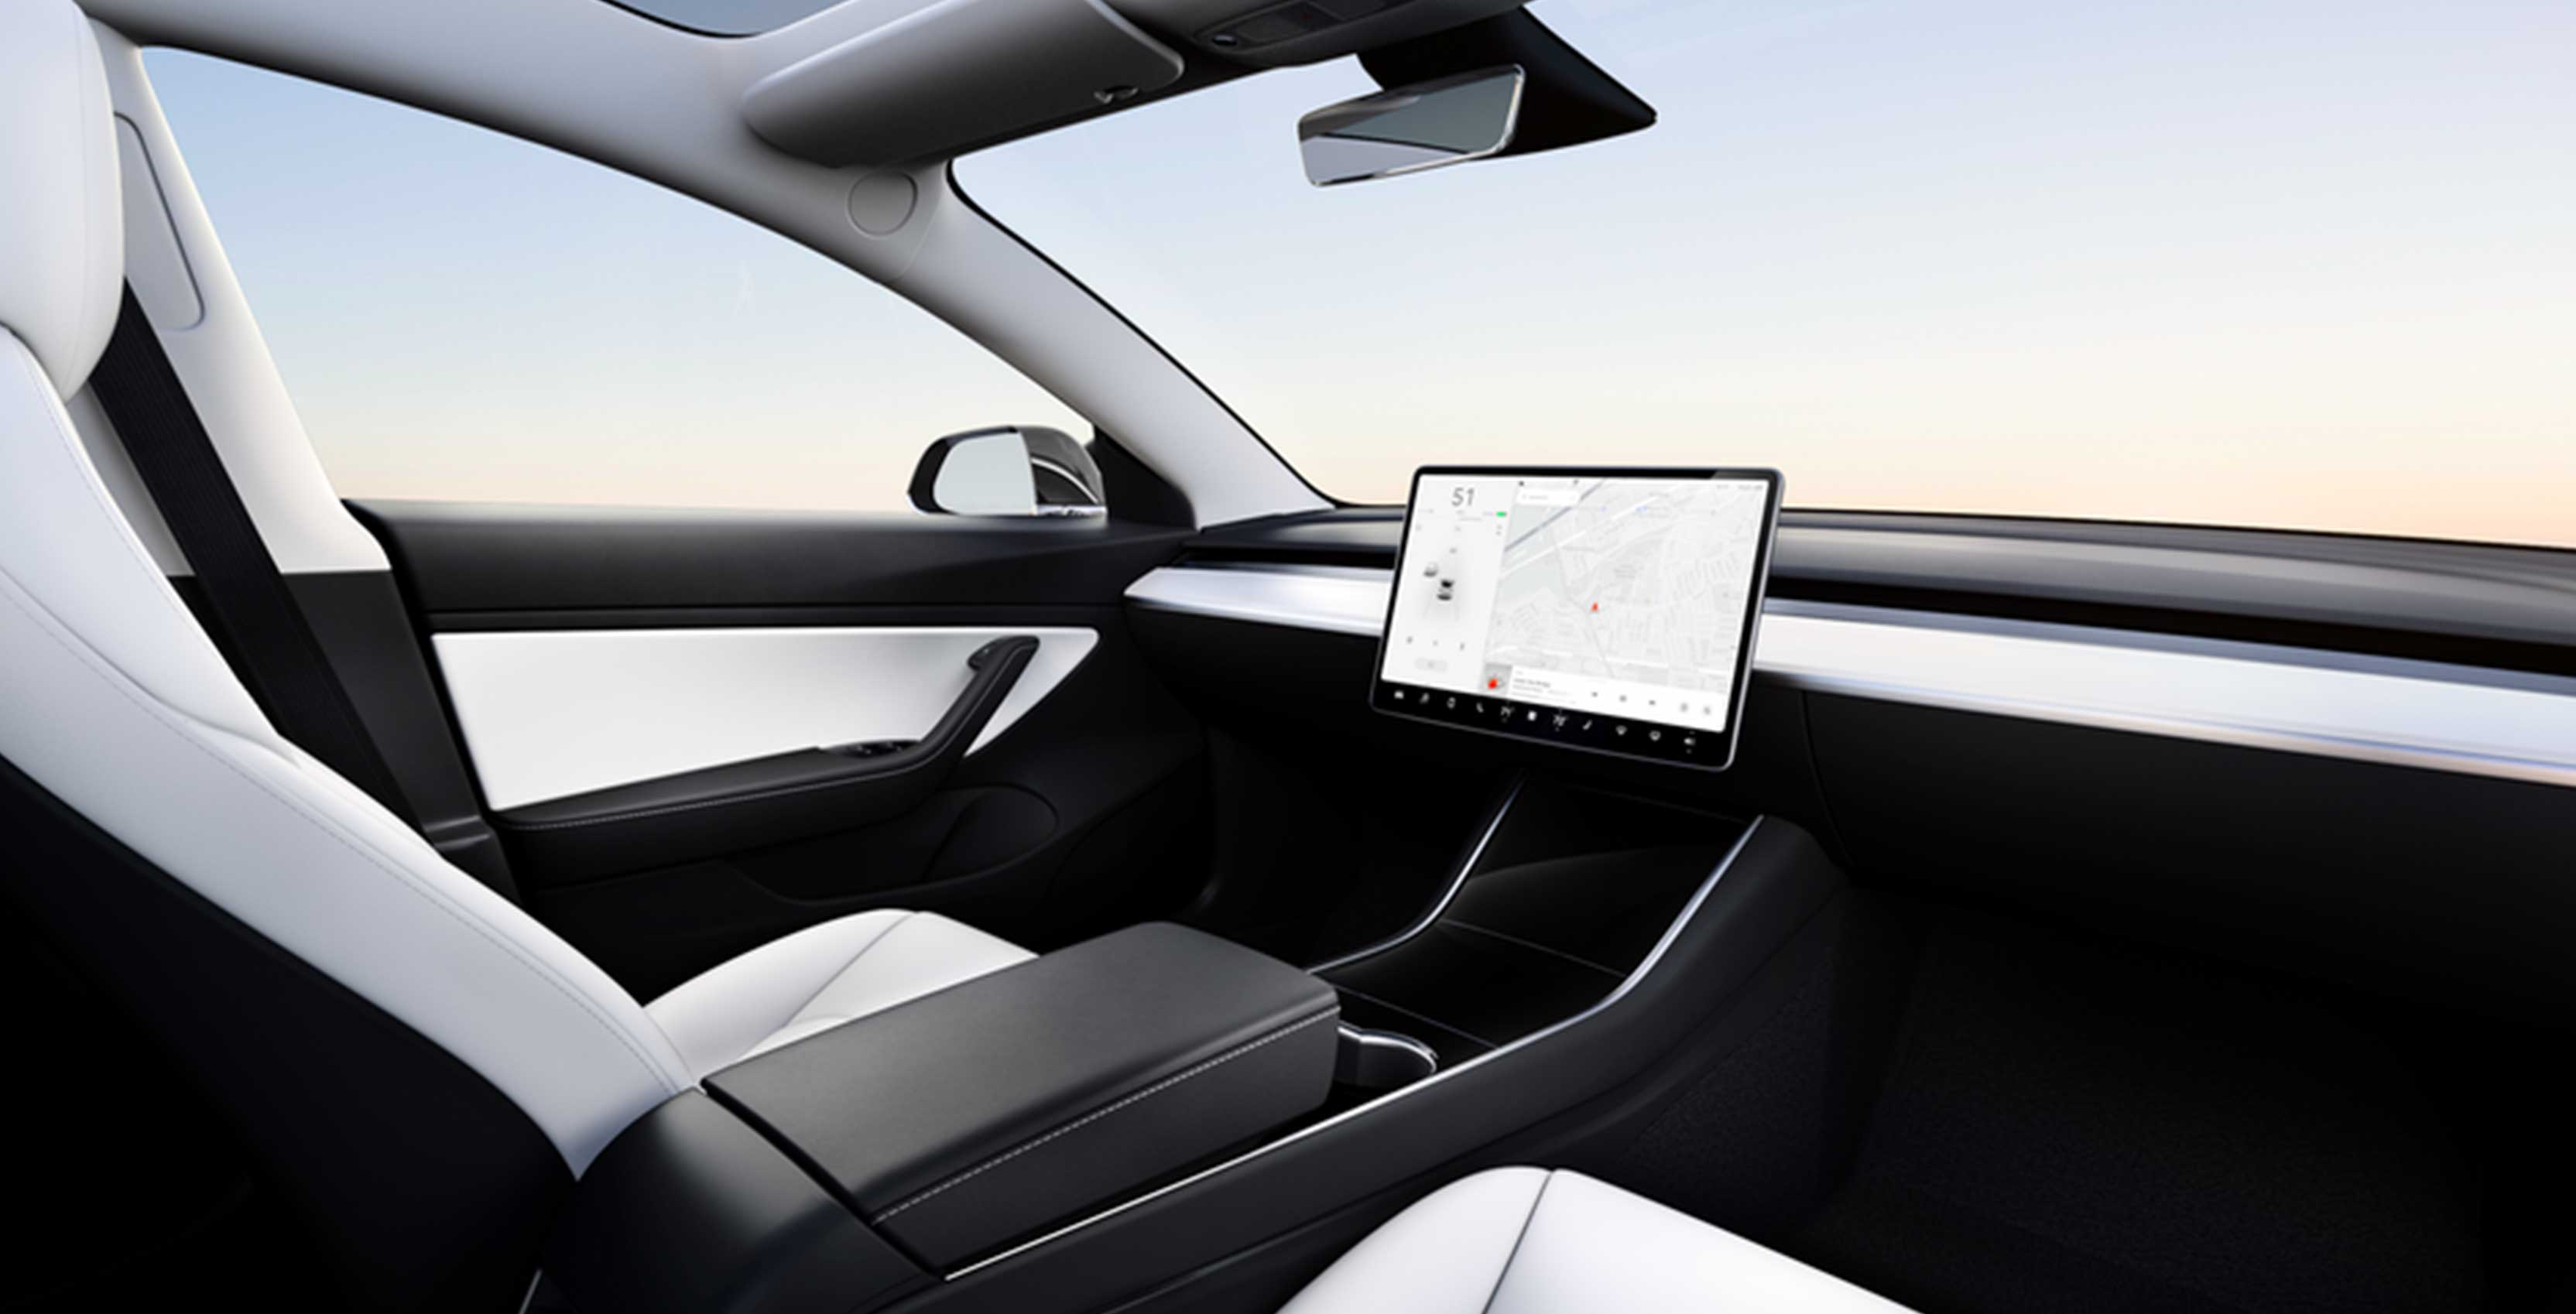 Tesla shows off car with no steering wheel